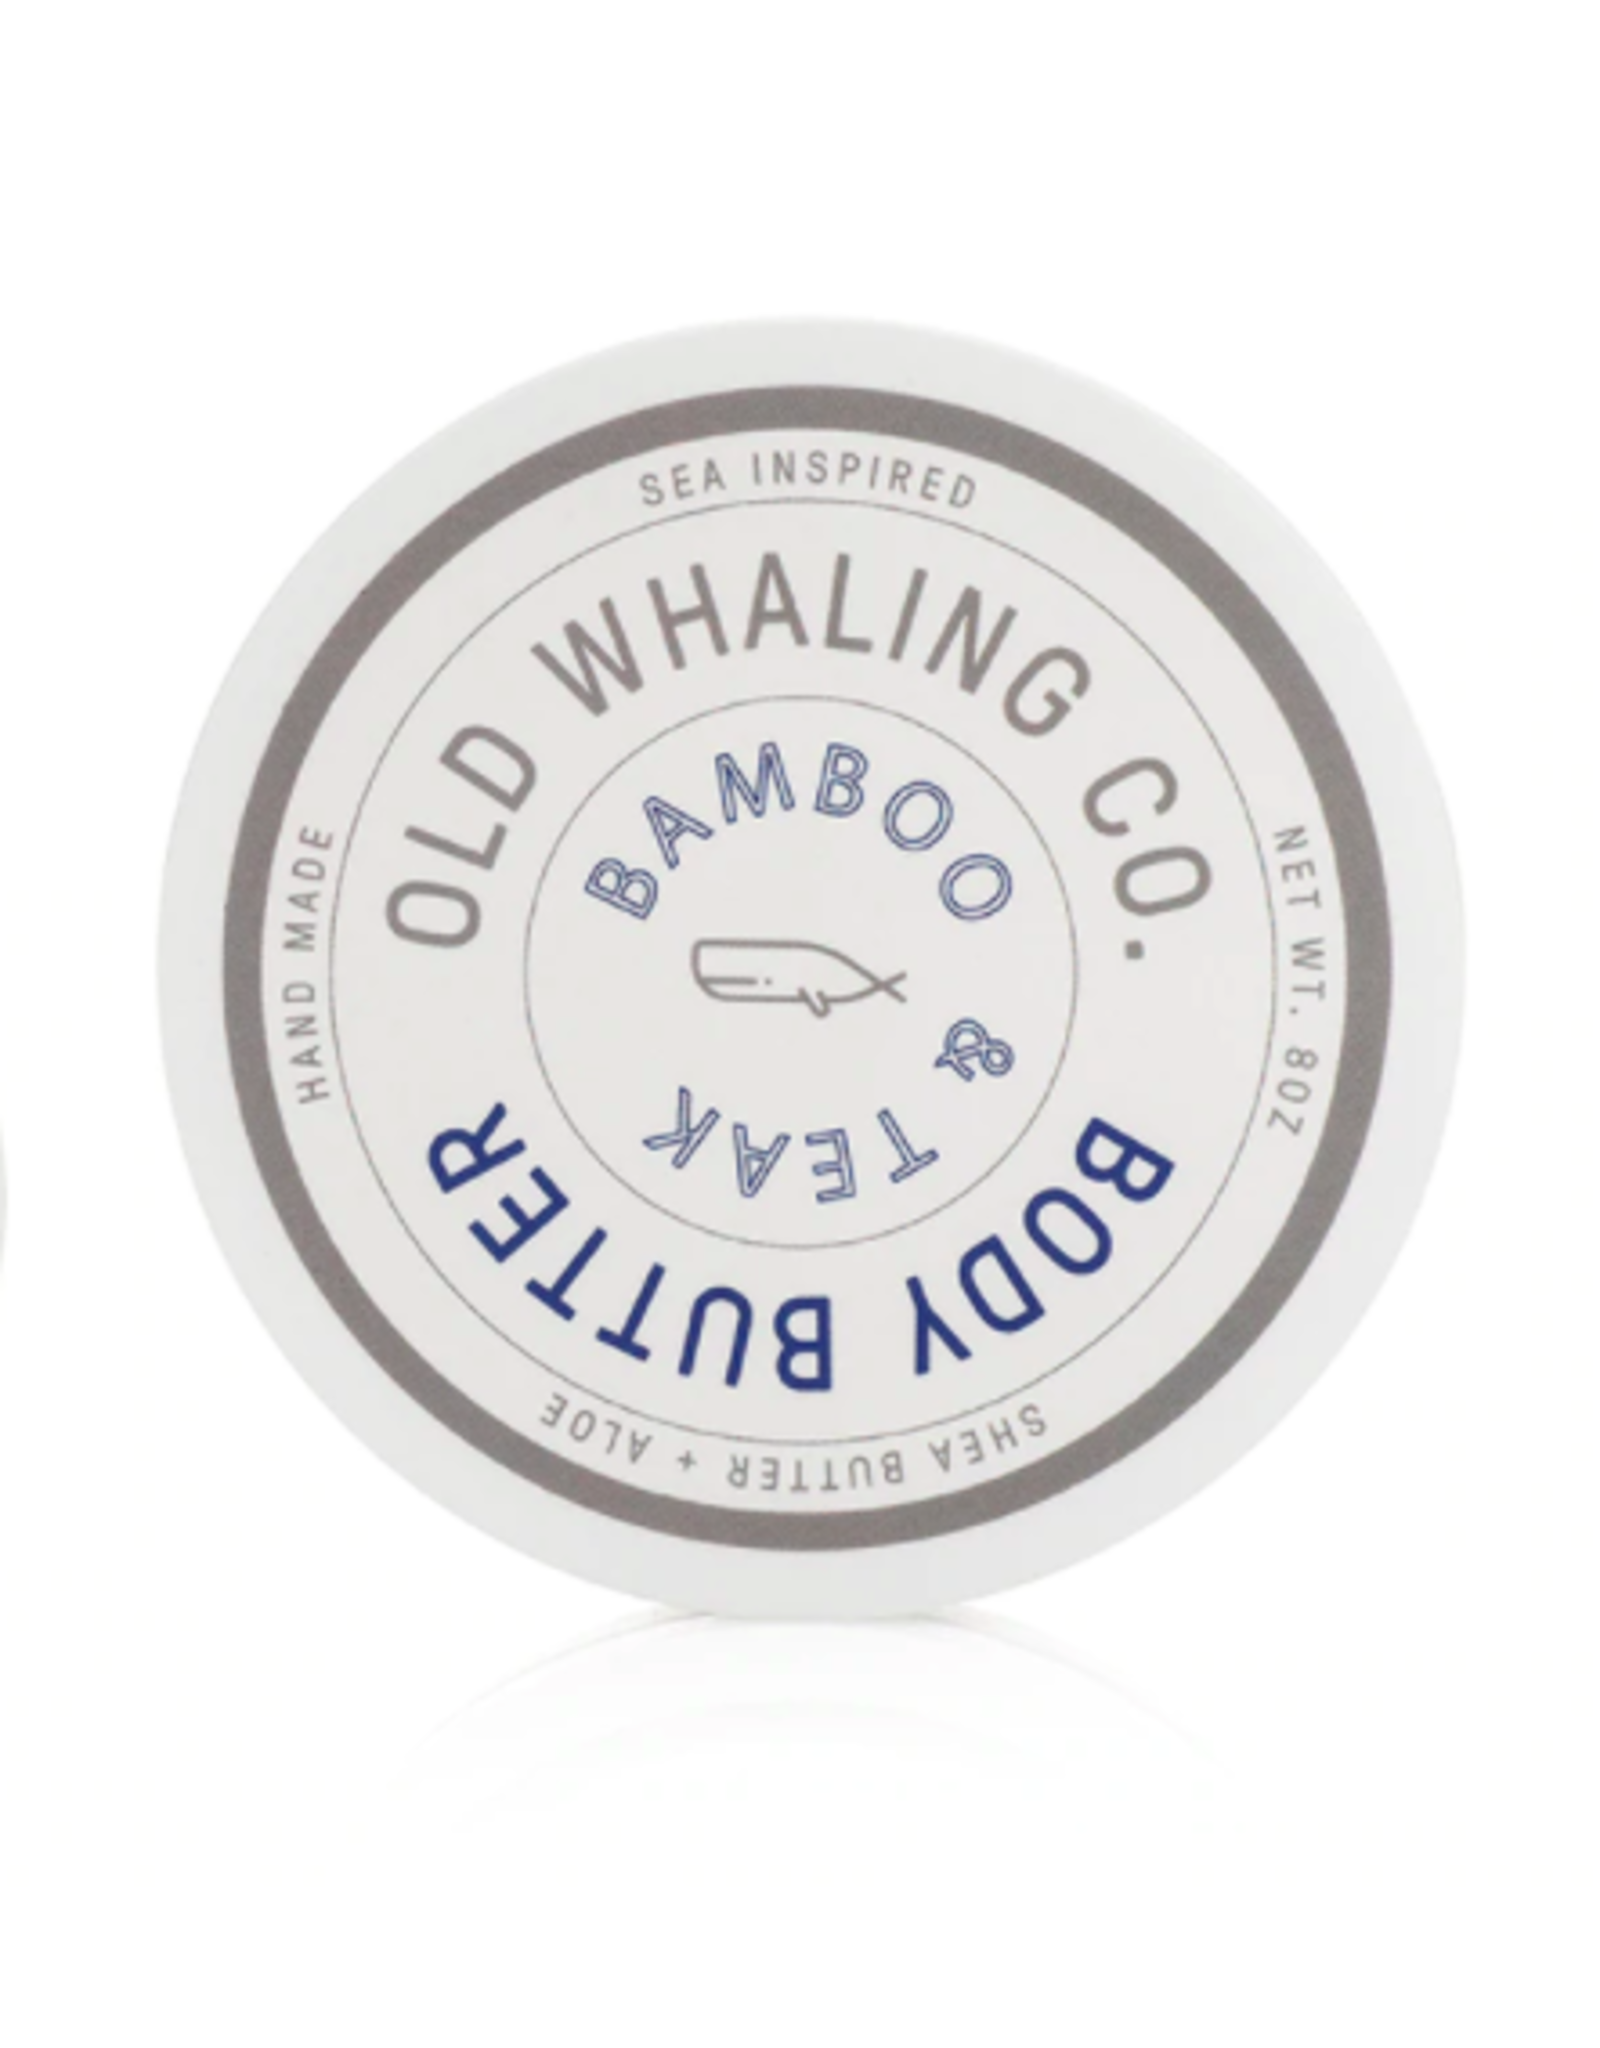 Old Whaling Co. Bamboo & Teak 8oz Body Butter